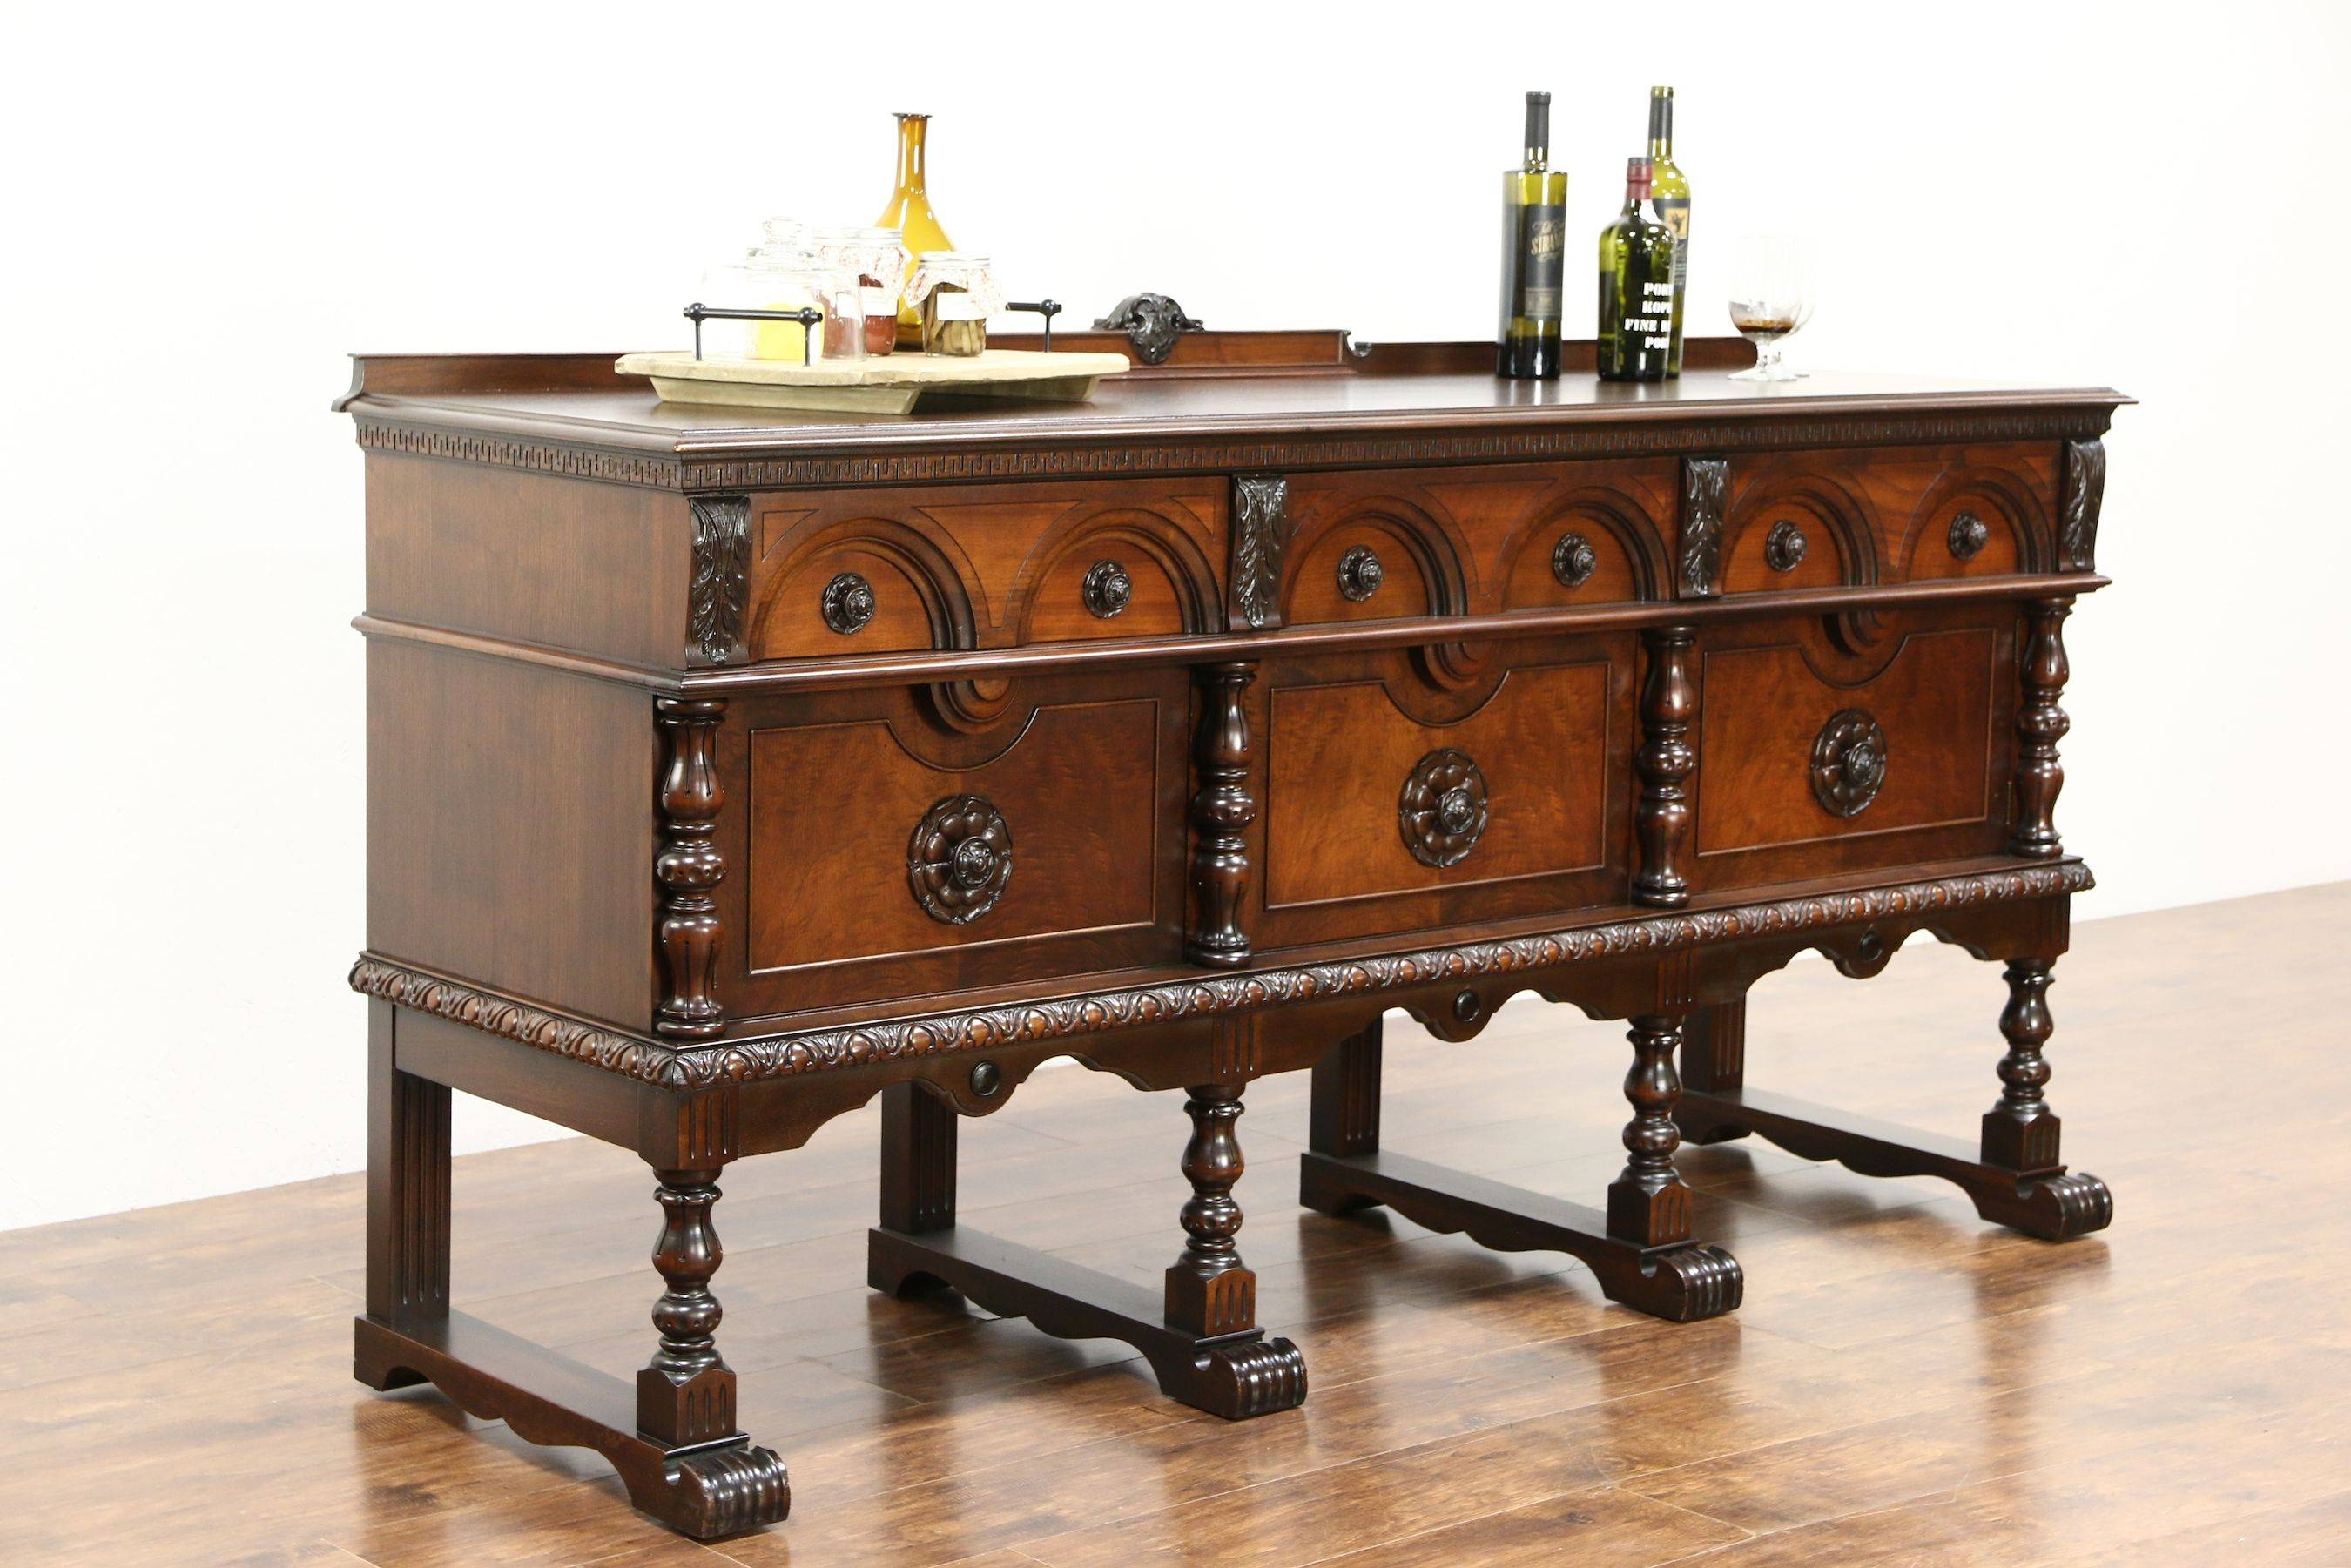 Sold – English Tudor 1925 Antique Walnut Carved Sideboard, Server With Regard To Most Recent Antique Sideboards (#15 of 15)